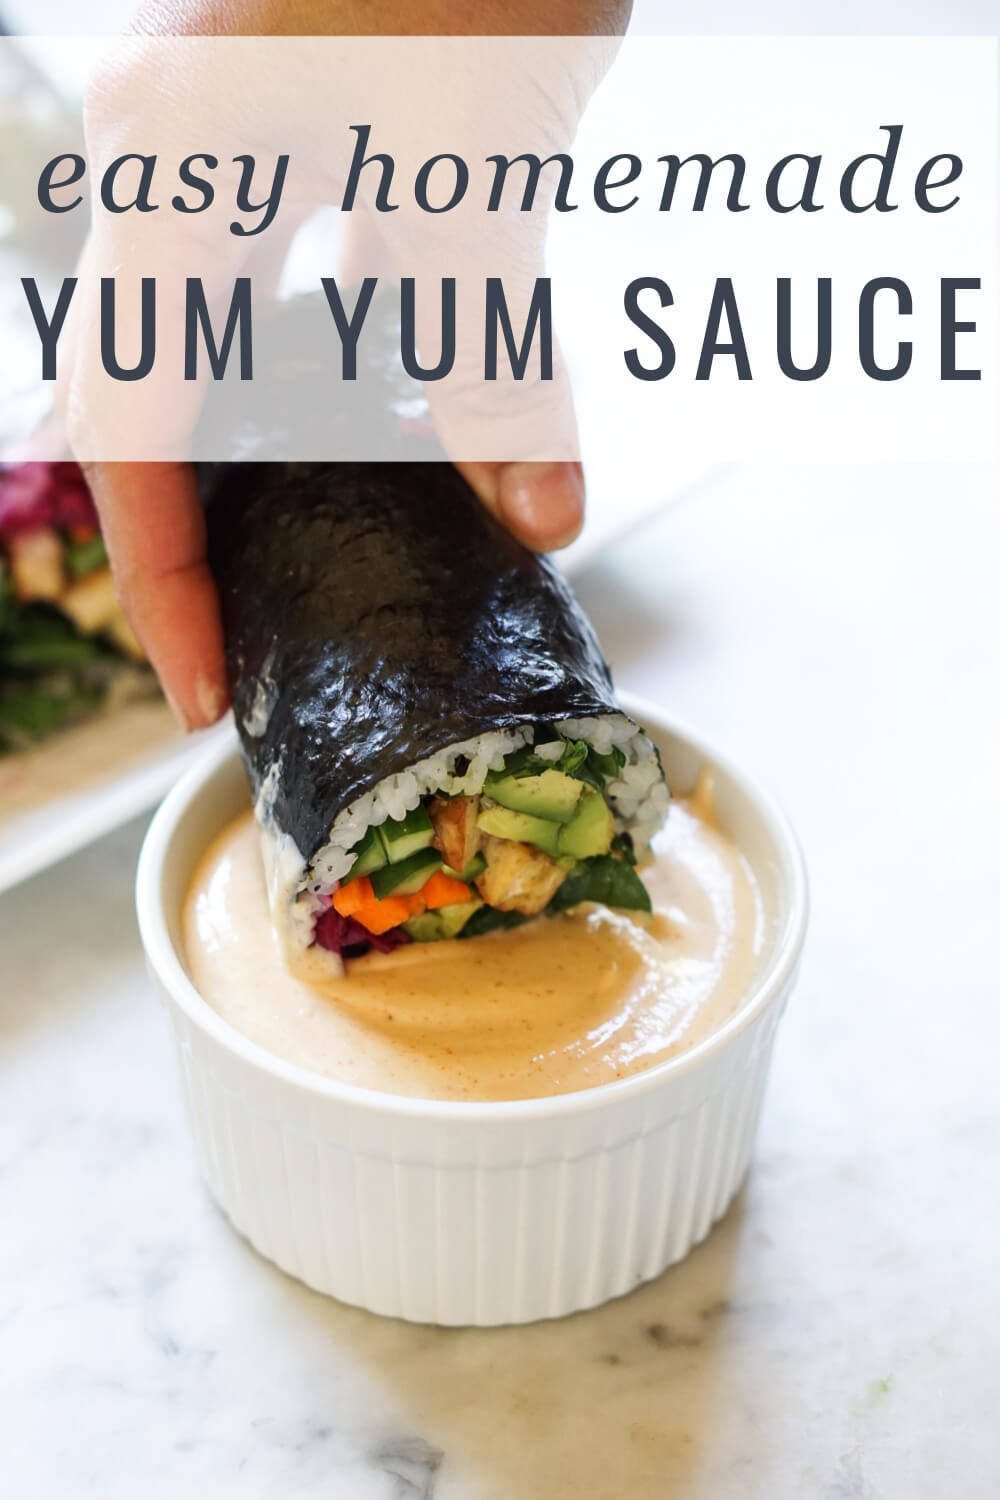 Sushi is dipped into a small white bowl filled with homemade Japanese yum yum sauce just like at Benihana hibachi restaurants!